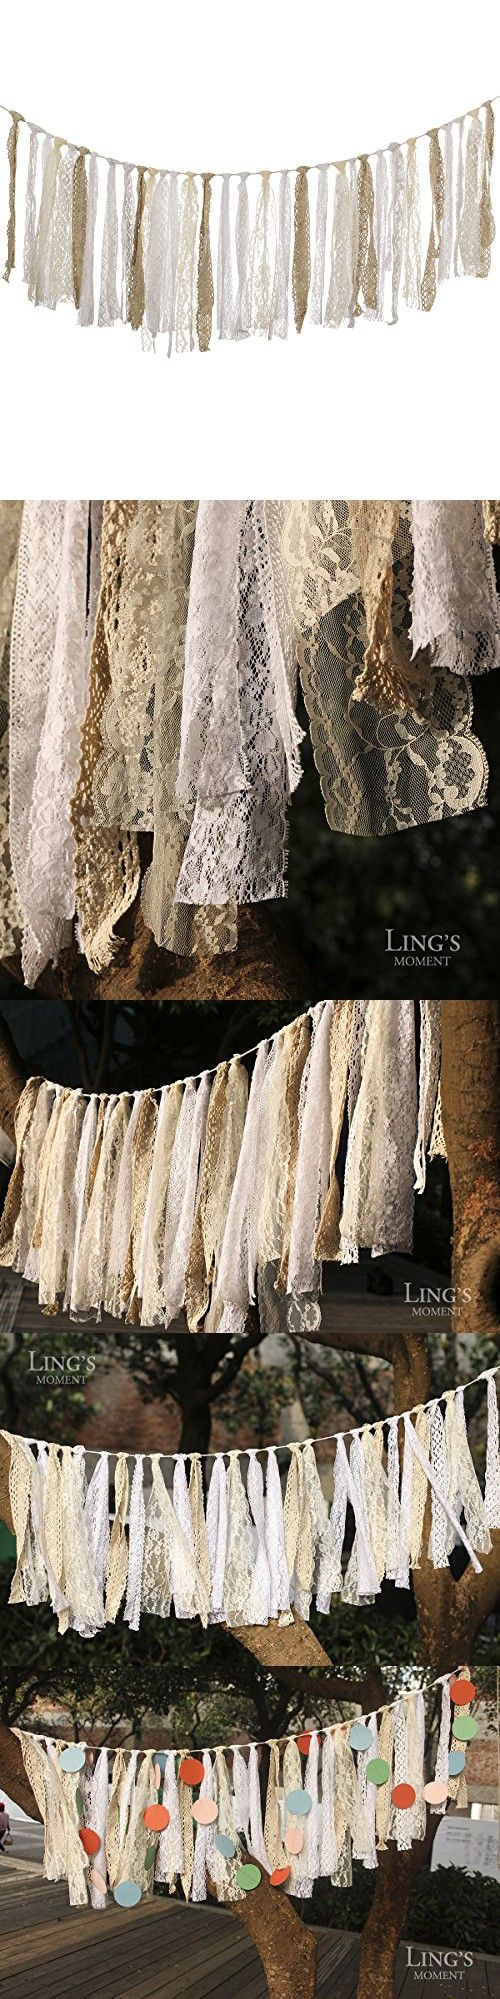 Ling's moment Lace Garland, Shabby Chic Garland Rag Tie Banner, Rustic Wedding Garland, Lace Tassel Banner, Boho Chic Lace Bunting, Pastel Garland, Party Decor, Photo Prop, Shabby Lace Garland 4 FT